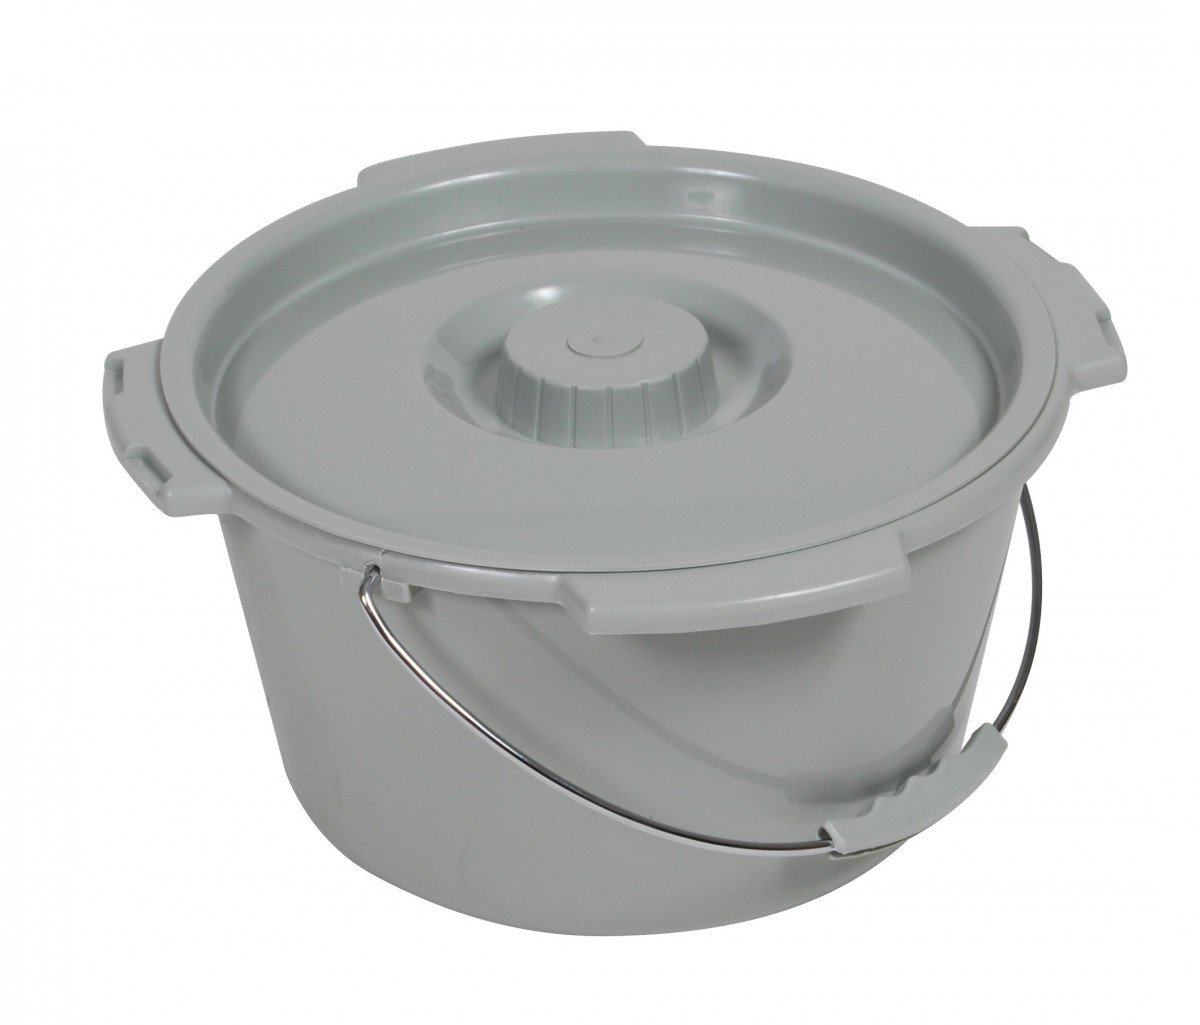 Drive Commode Bucket W Metal Handle And Cover 11106